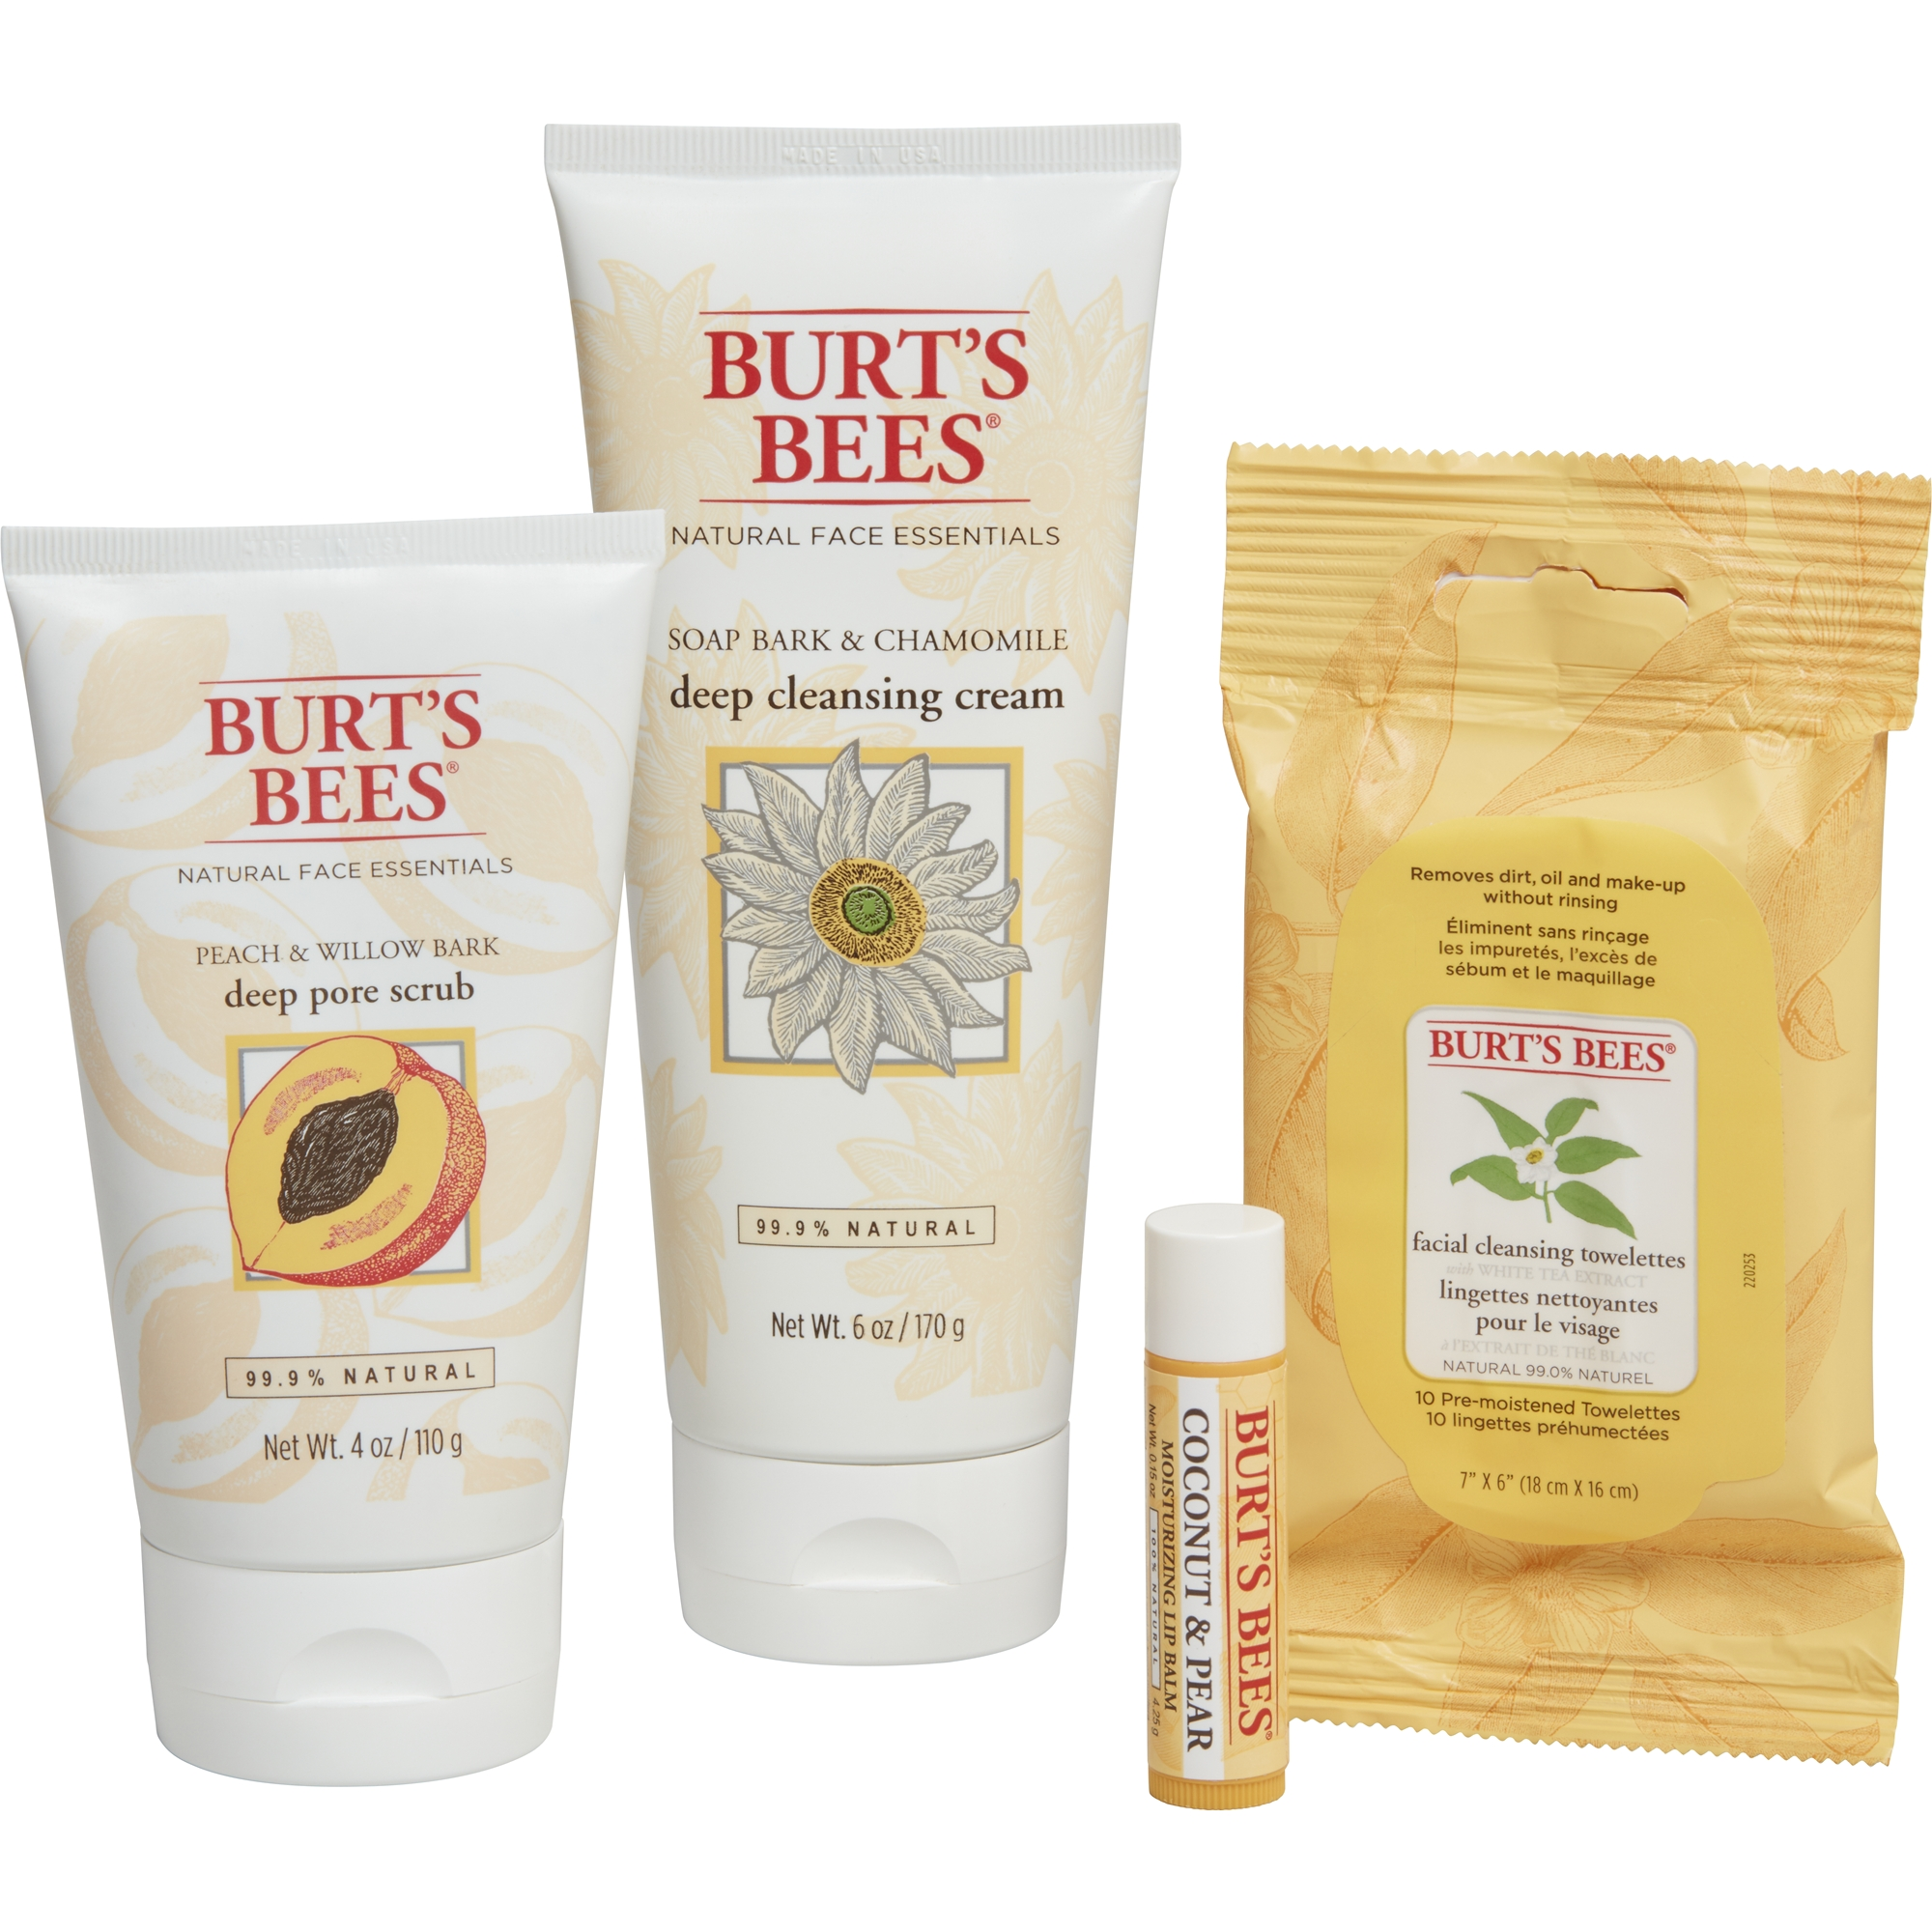 Burt's Bees Face Essentials Gift Set, 4 Skin Care Products - Cleansing Towelettes, Deep Cleansing Cream, Deep Pore Scrub and Lip Balm